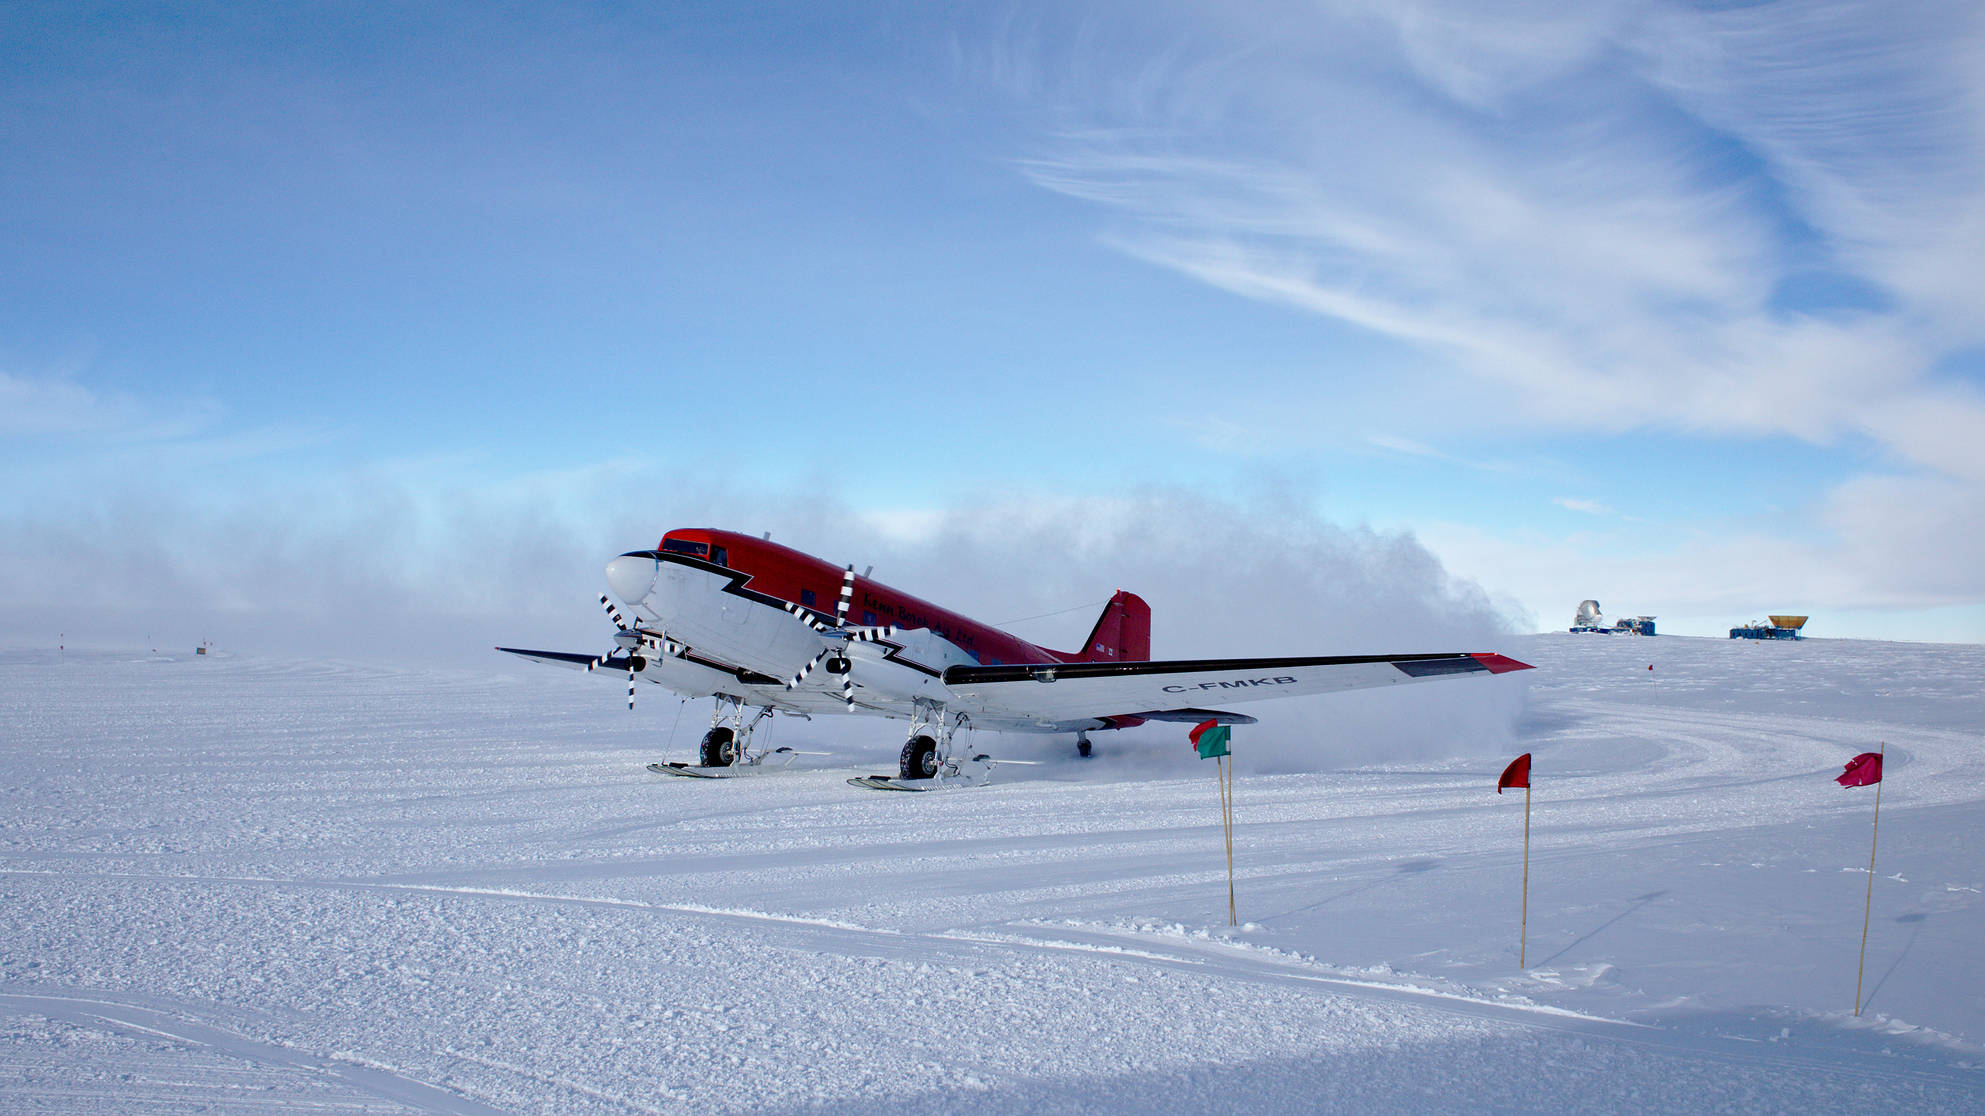 Basler arriving at south pole. In the background the South Pole Telescope, BICEP, and SPUD